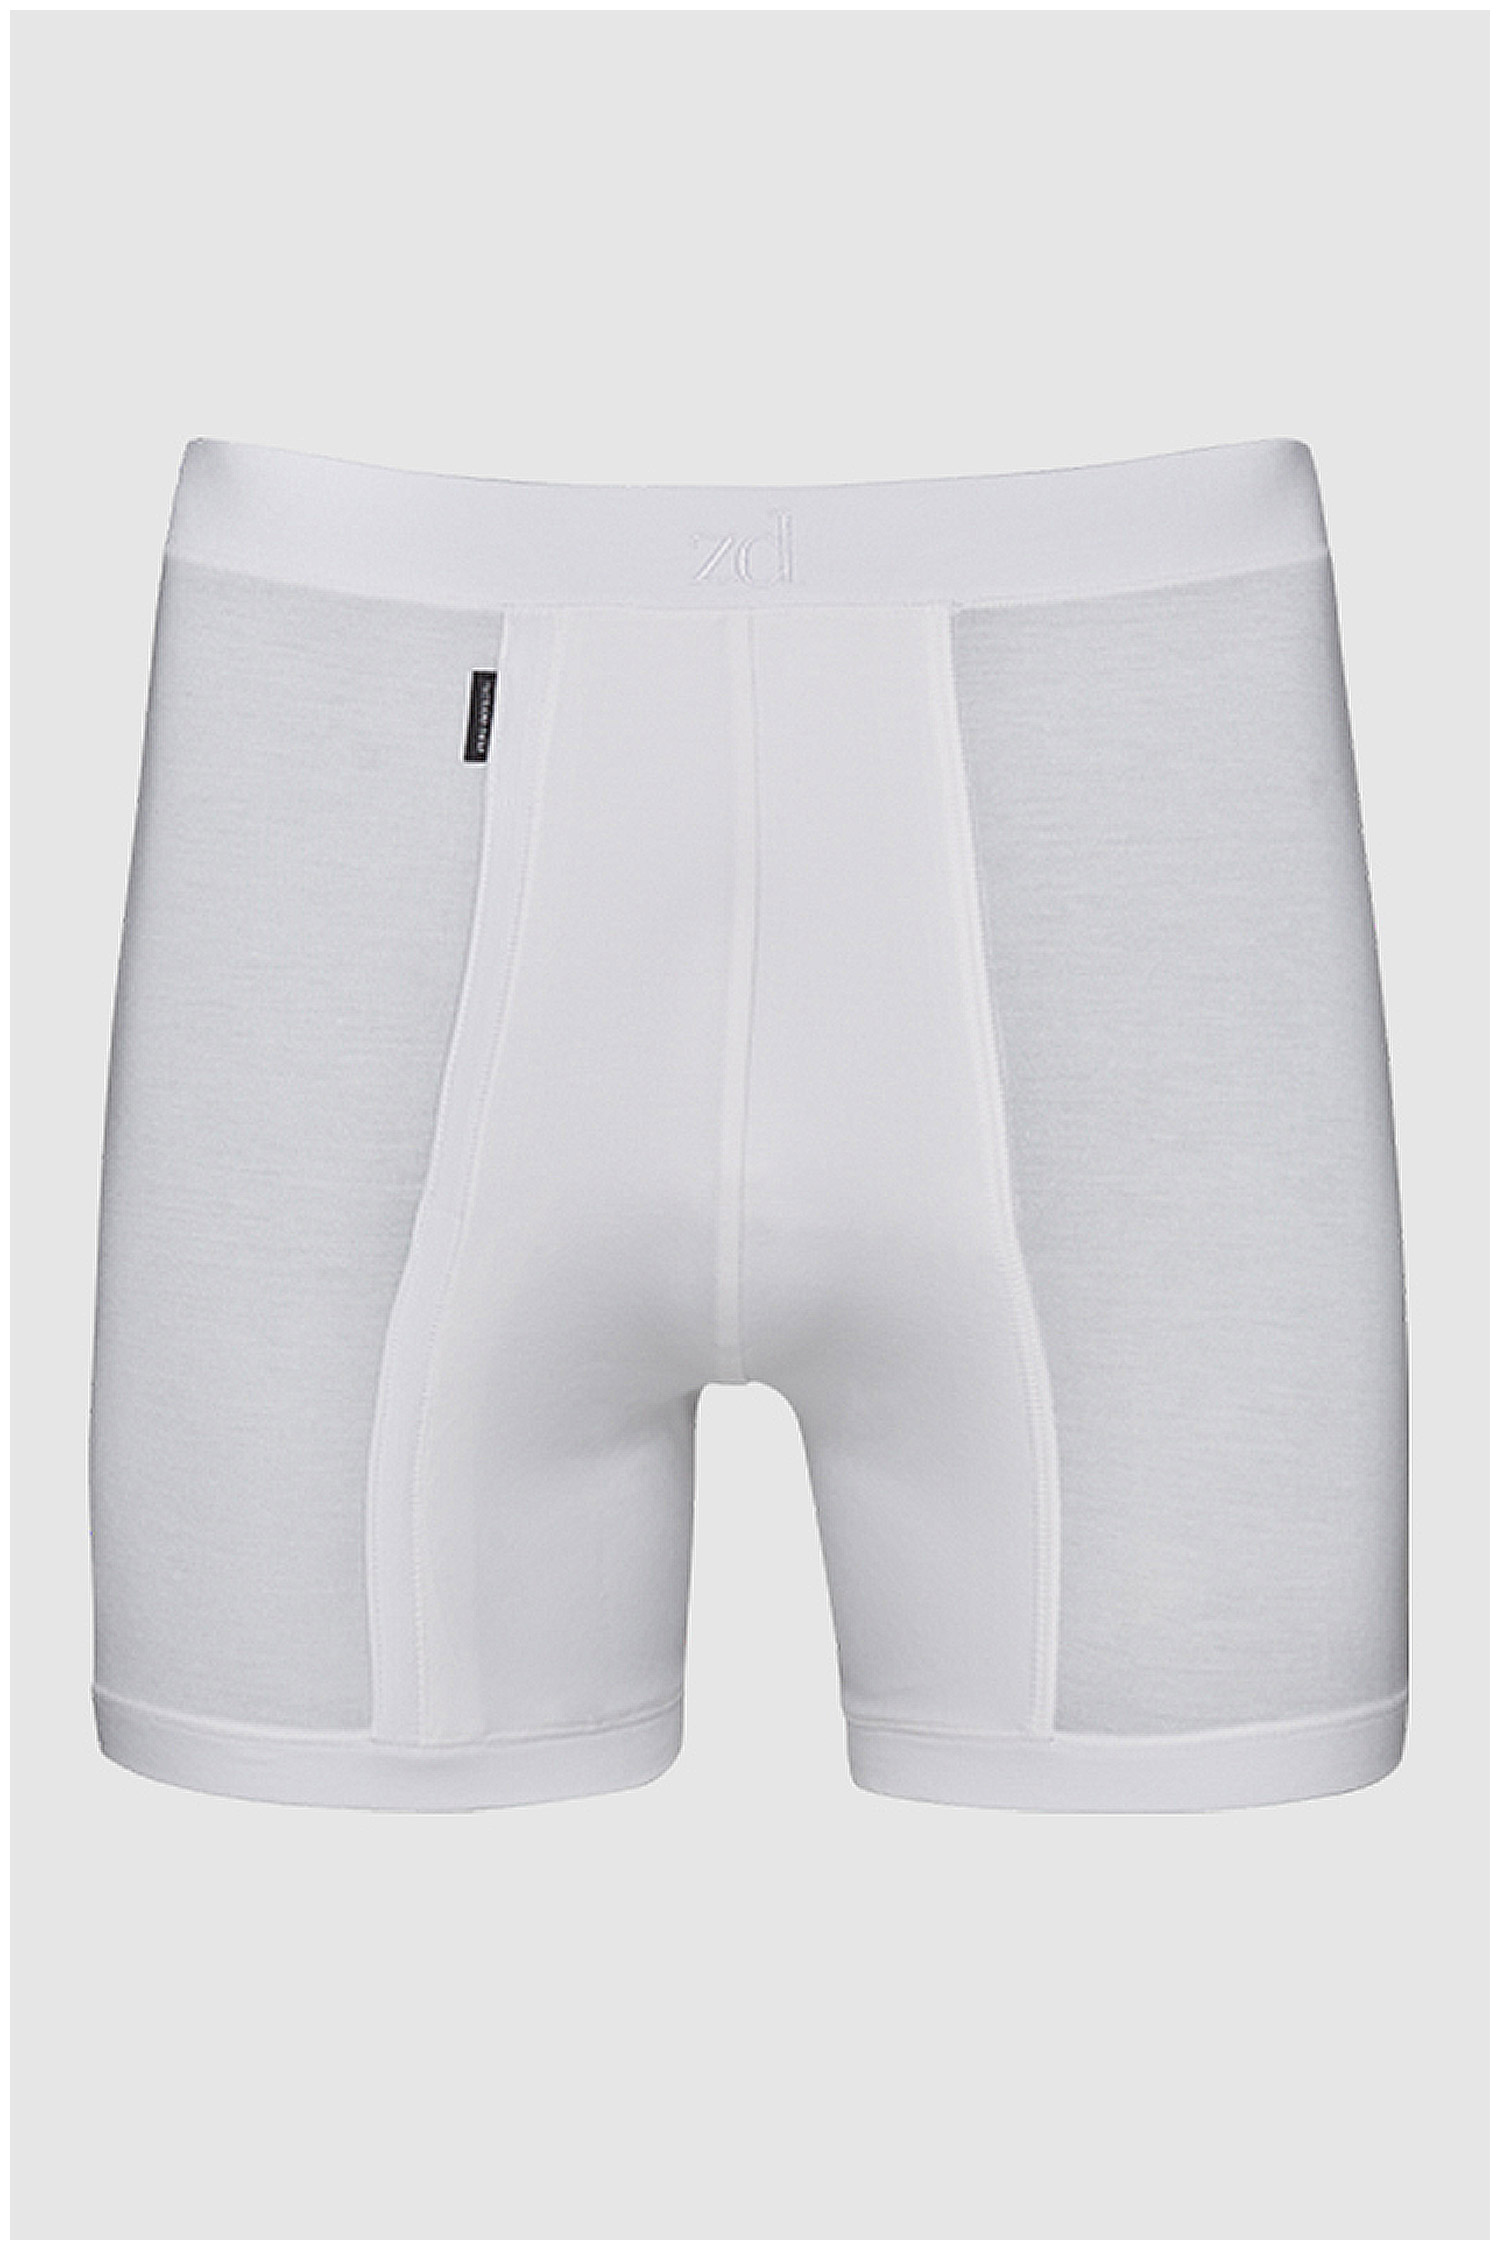 Interior, Boxers, 100492, BLANCO | Zoom